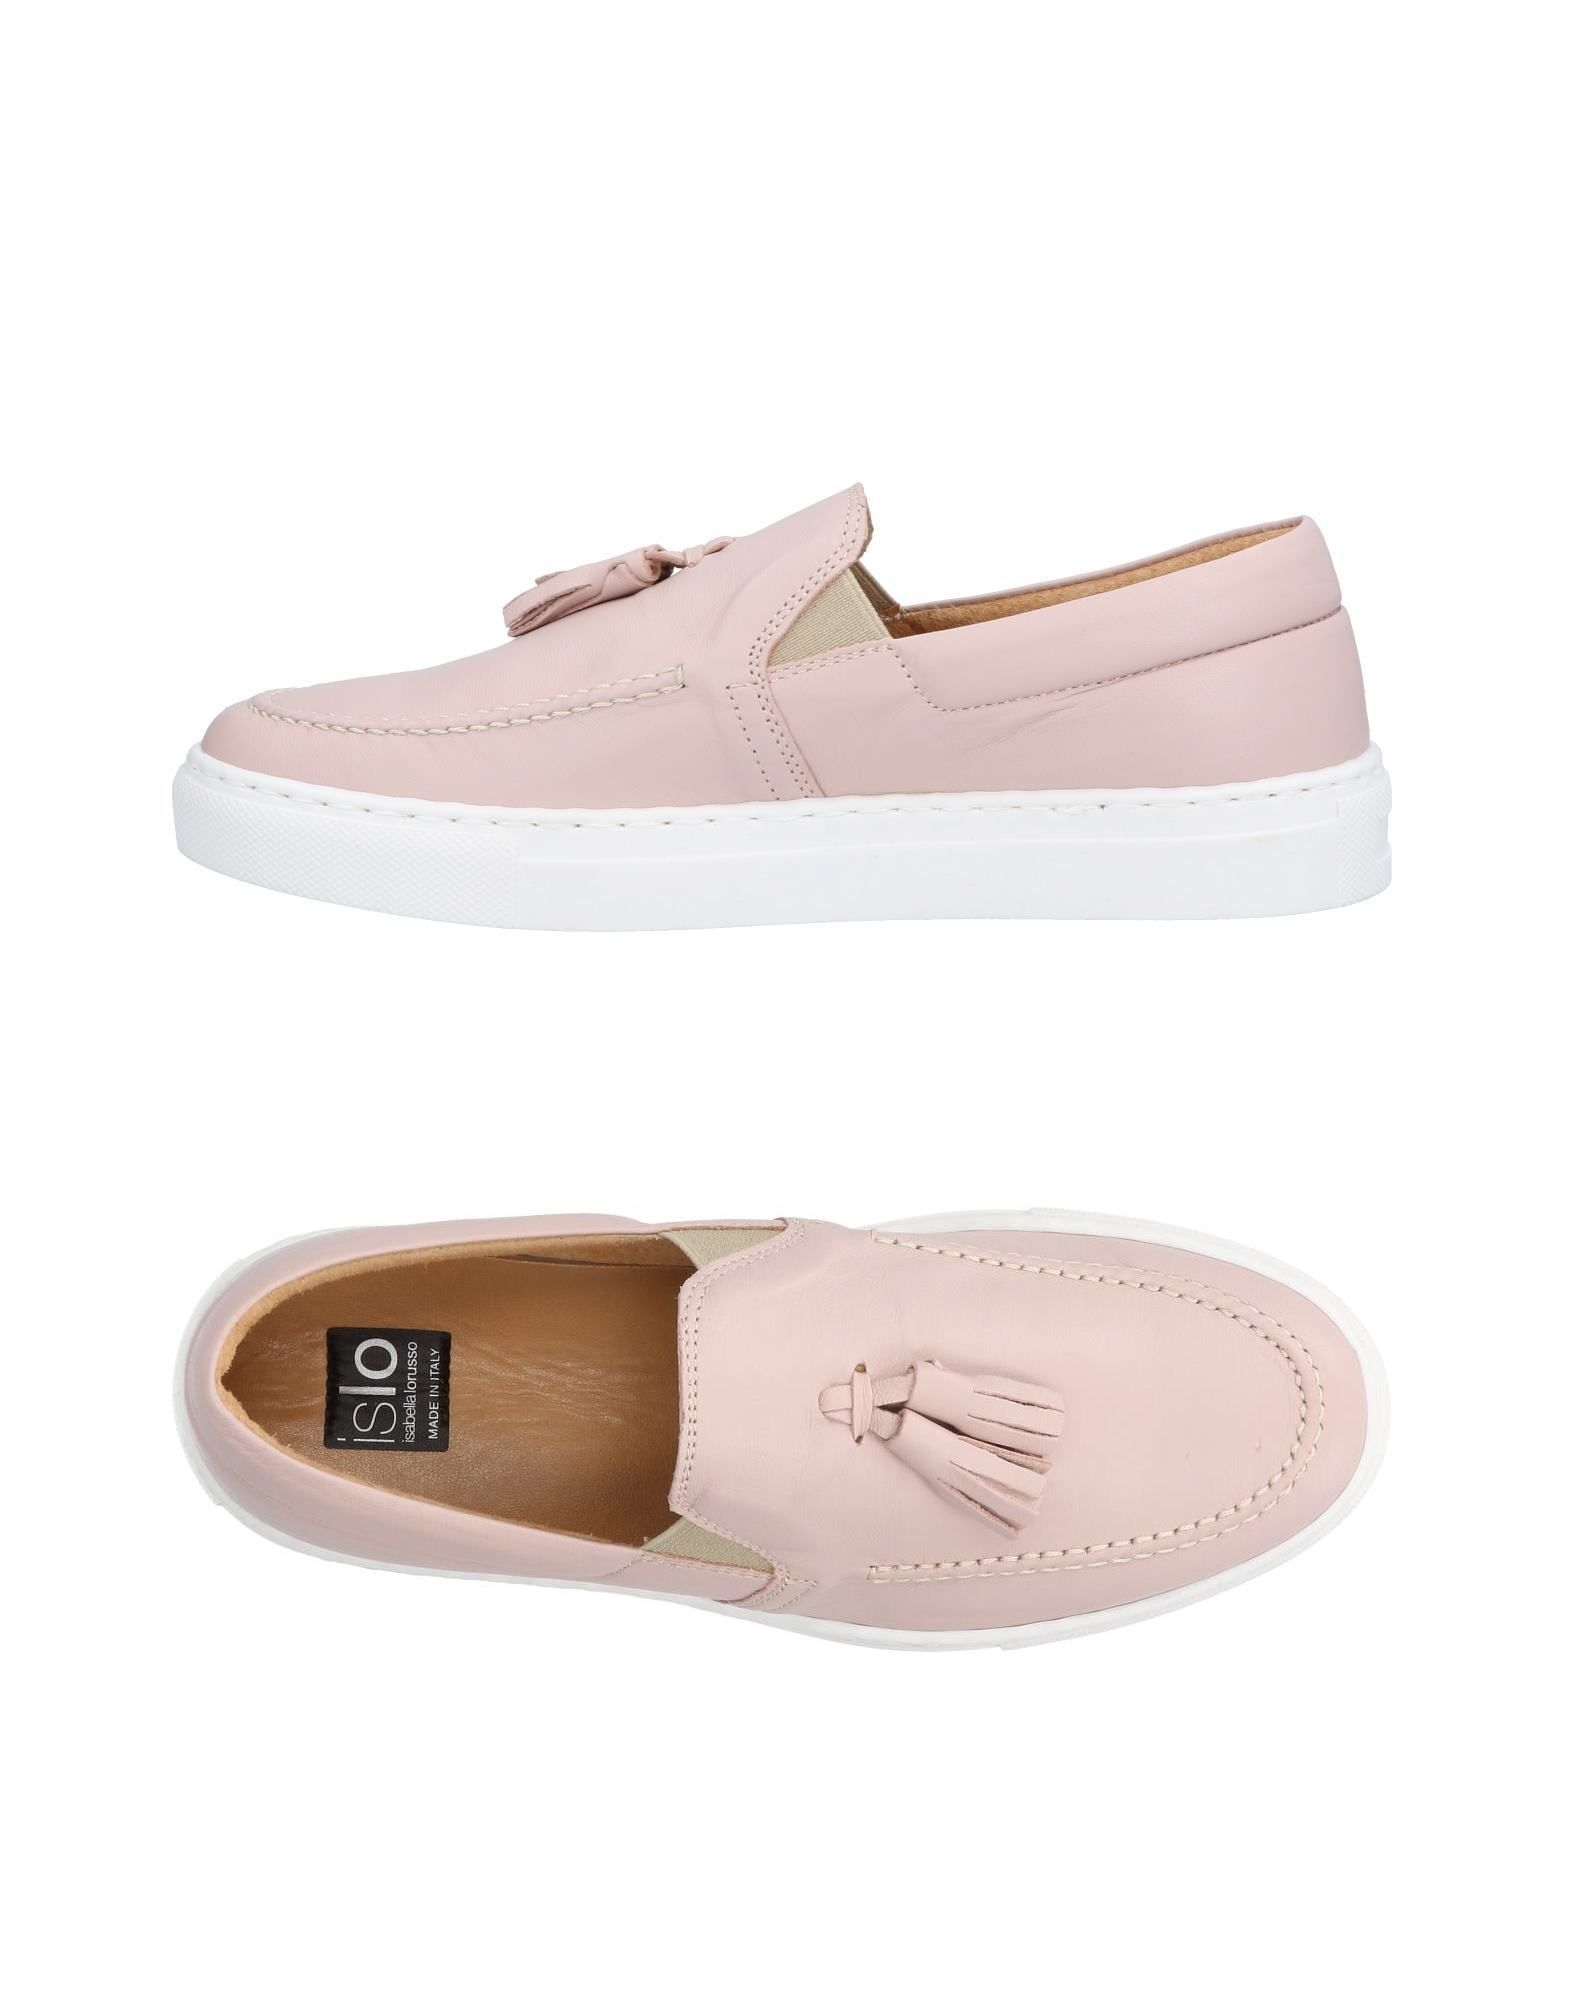 Sneakers Islo Isabella Lorusso Donna - 11471251CH